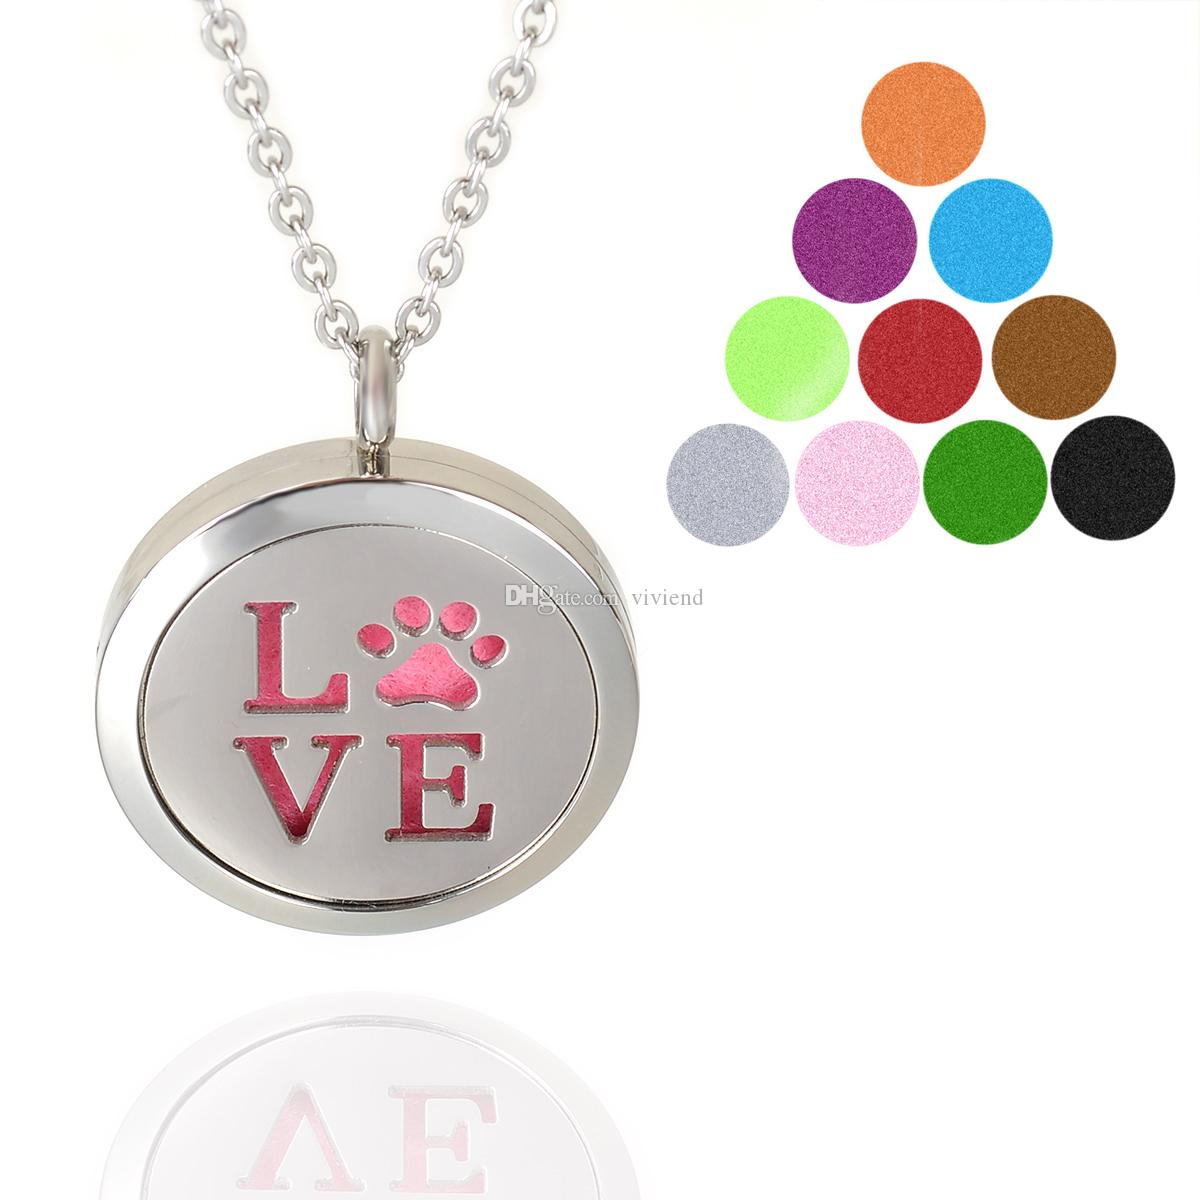 Aromatherapy Essential Oil Diffuser Necklace LOVE Pet Paw Locket Pendant with Refill Pads 316L Stainless Steel